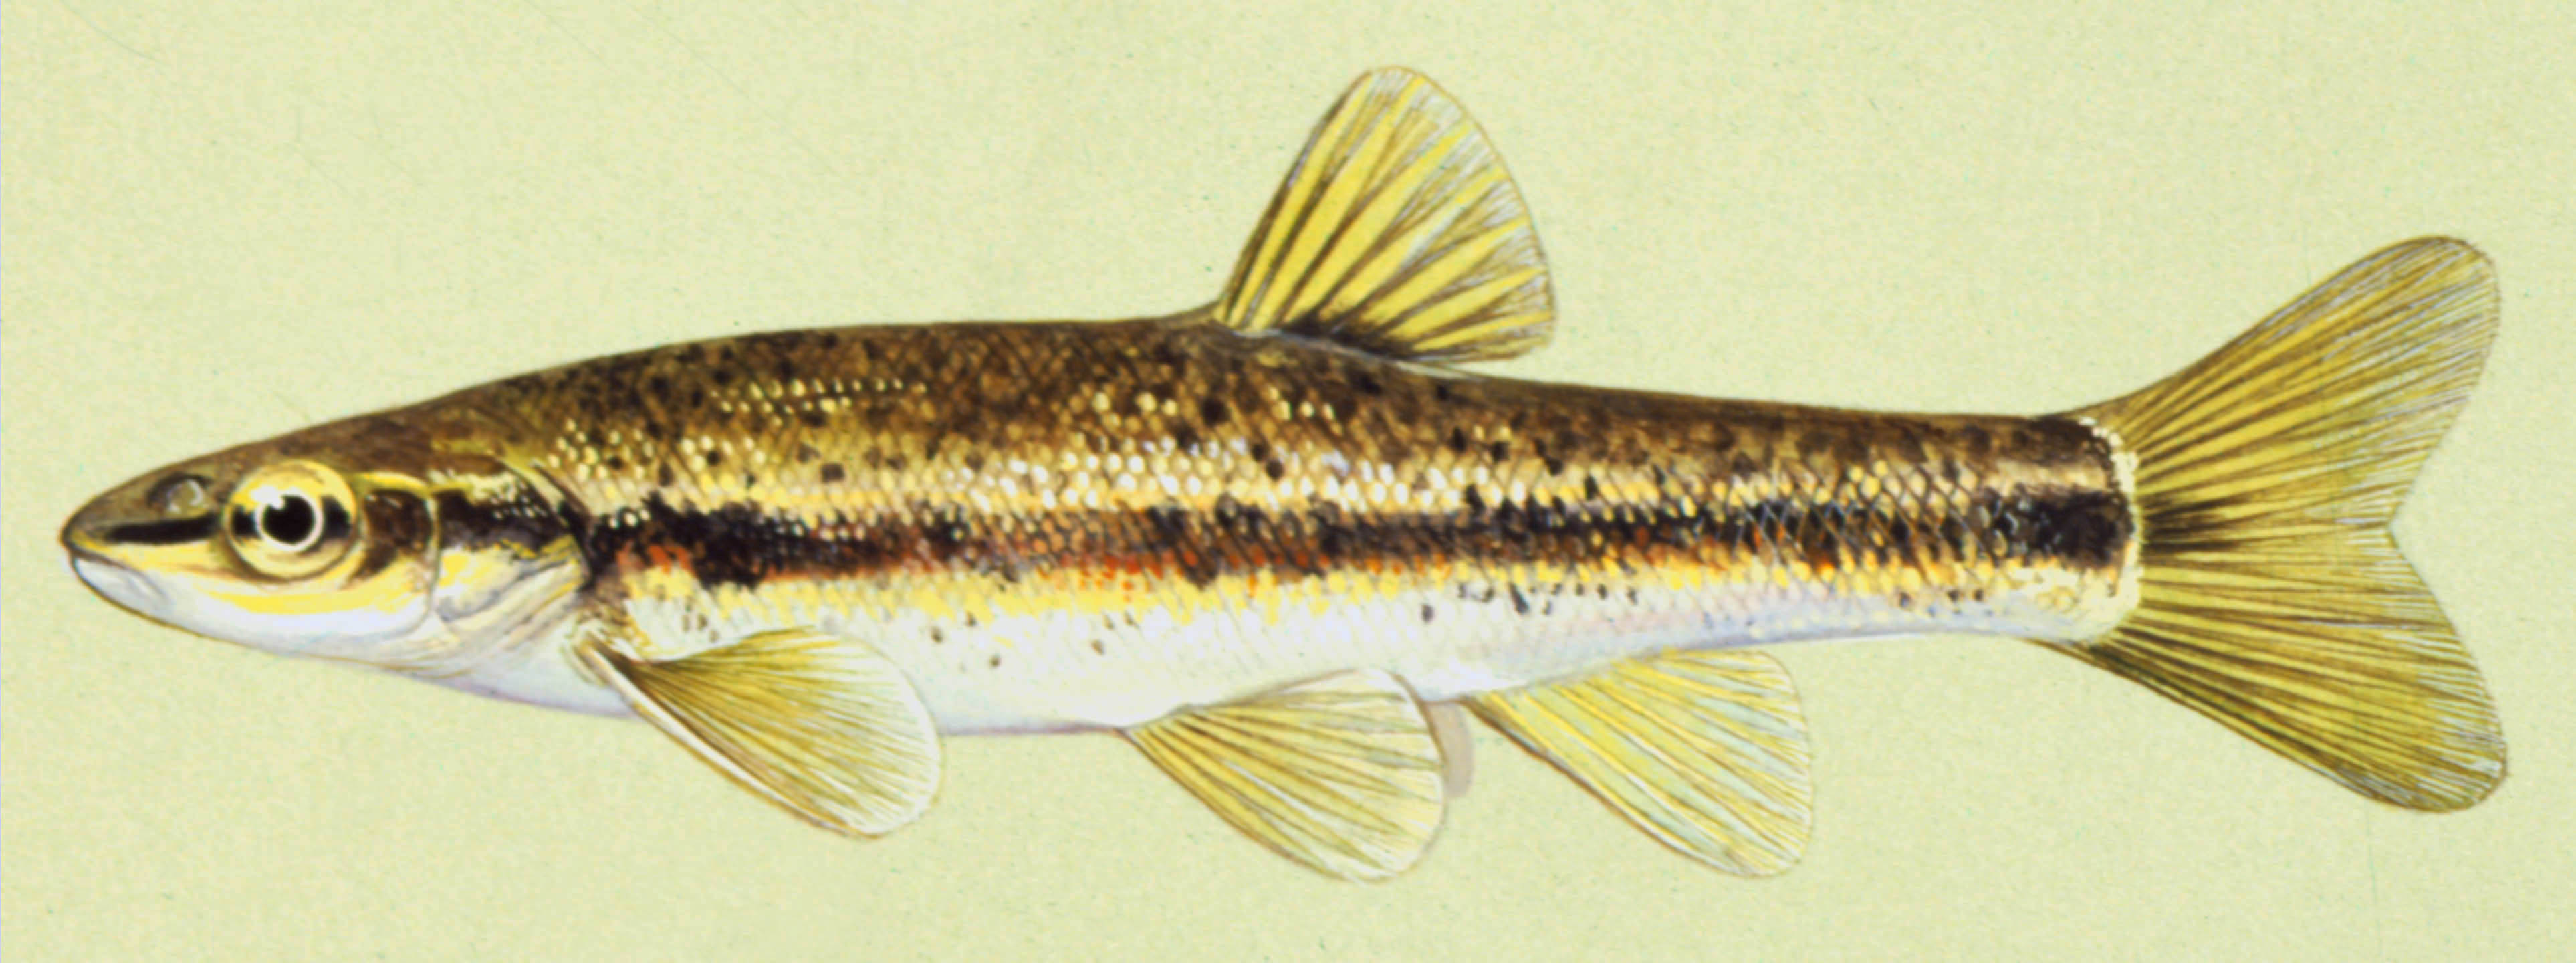 Blacknose Dace, illustration by Maynard Reece, from Iowa Fish and Fishing.